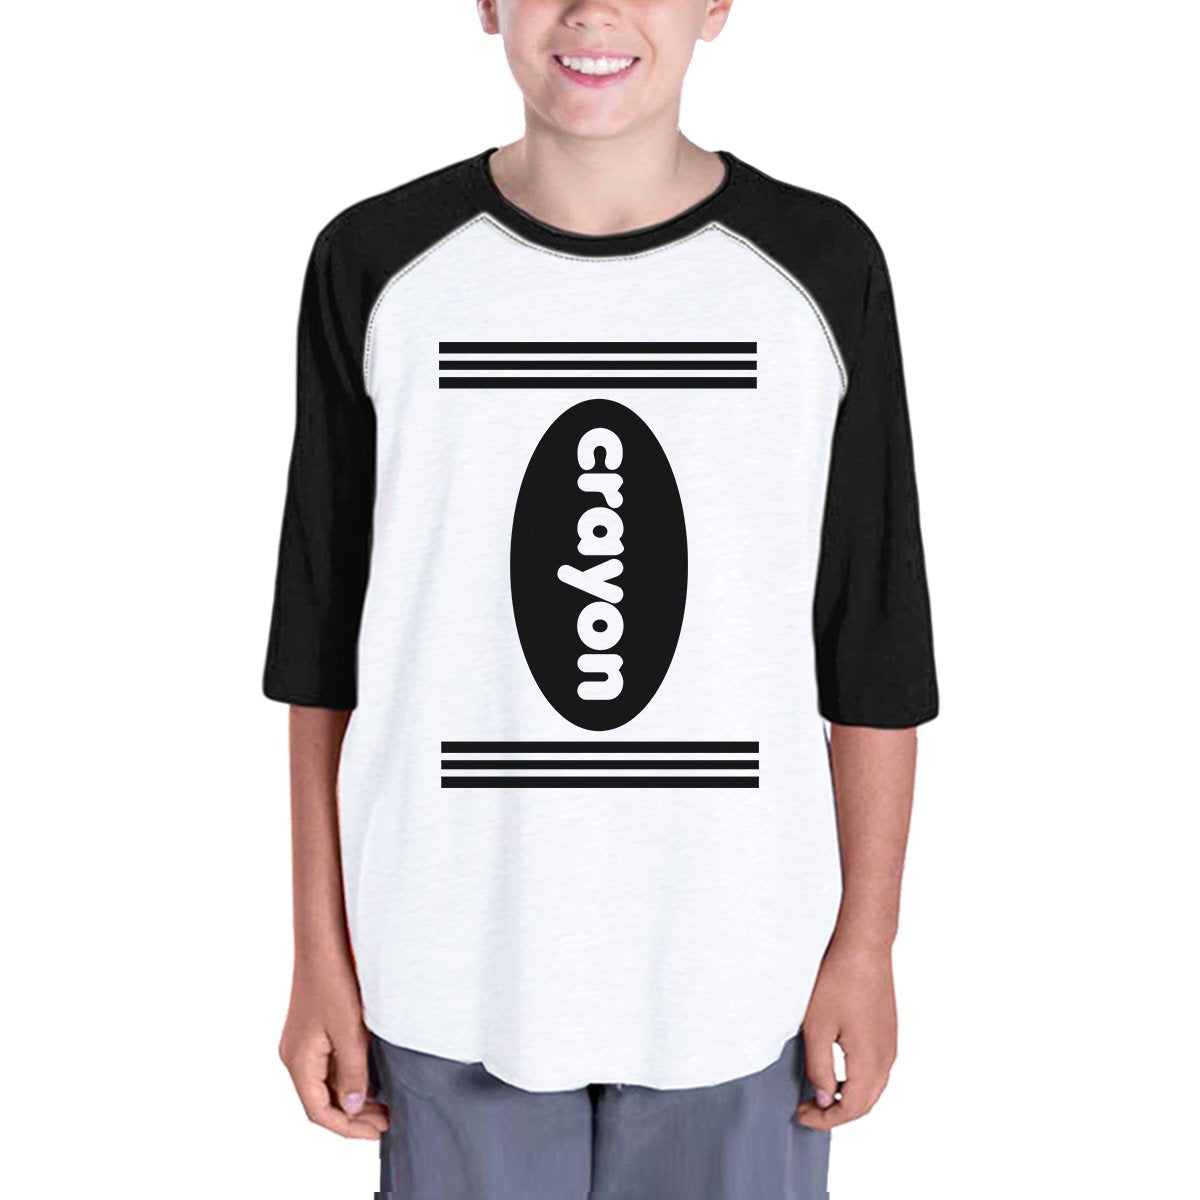 Crayon Kids Black And White BaseBall Shirt